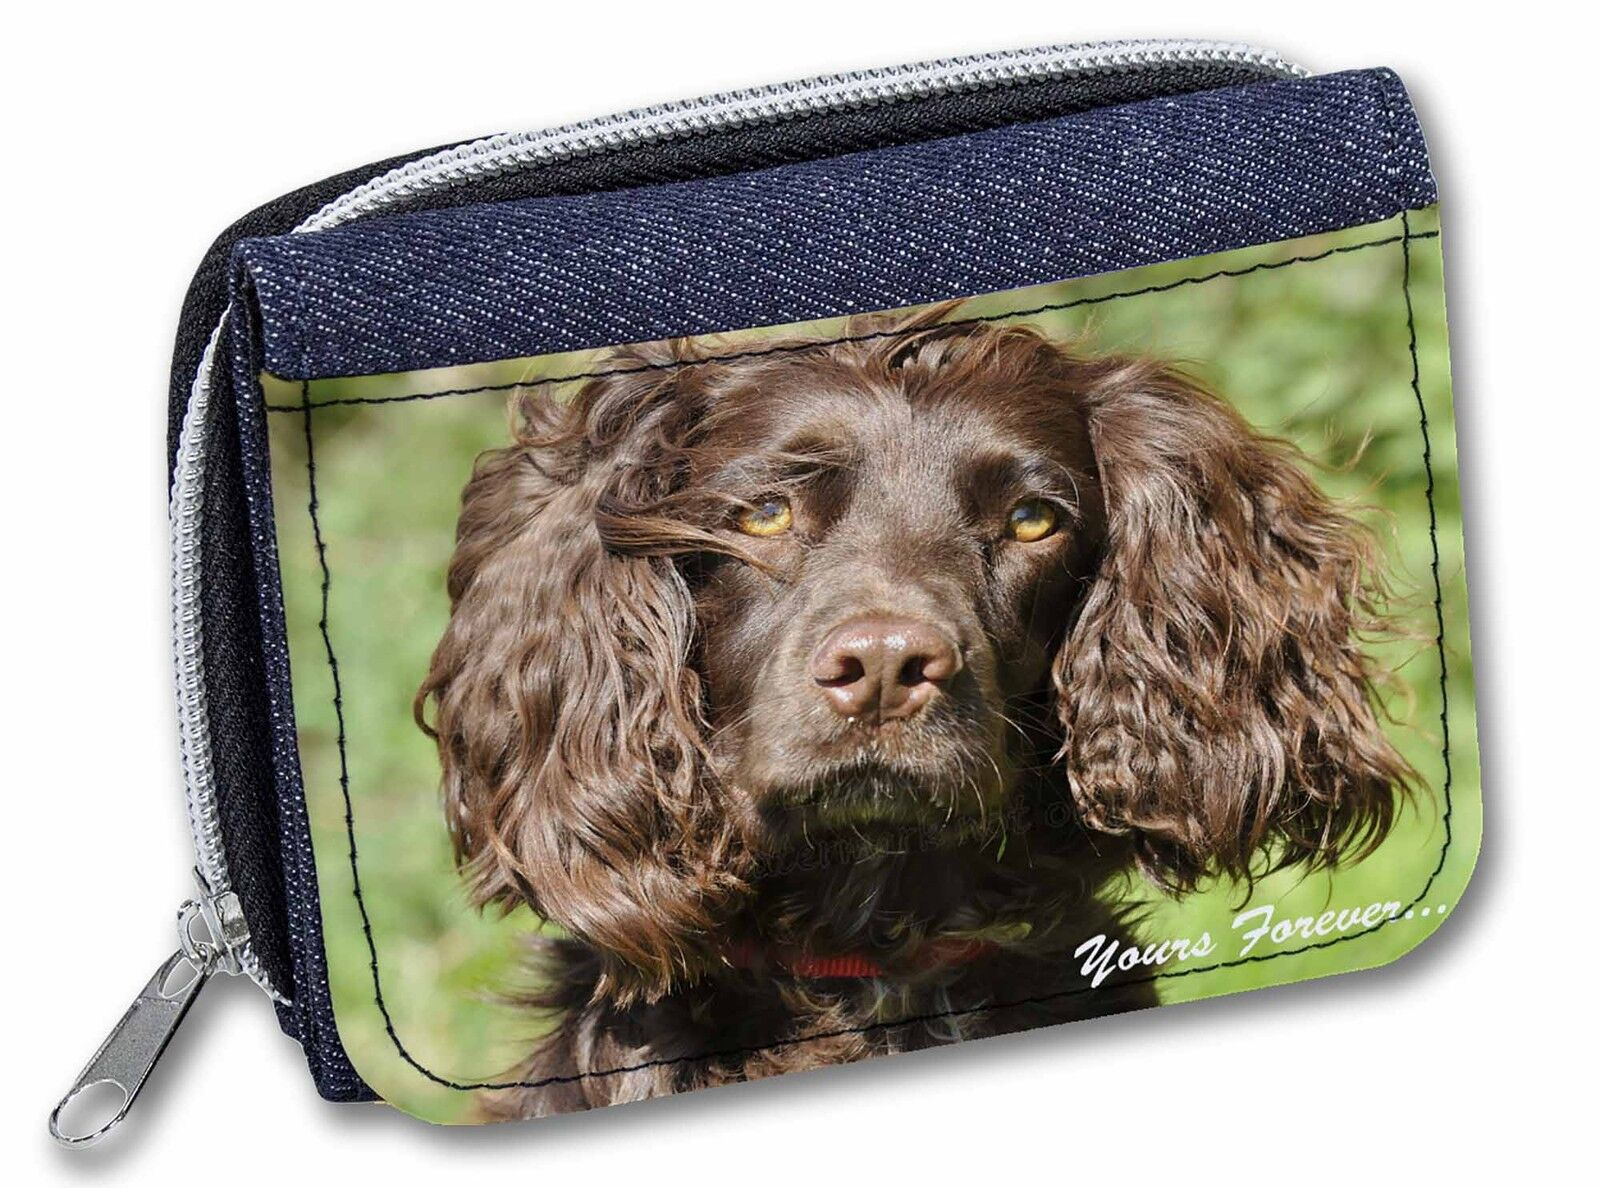 Chocolate Spaniel 'Yours Forever' Girls/Ladies Denim Purse Wallet Chr, AD-SC4yJW